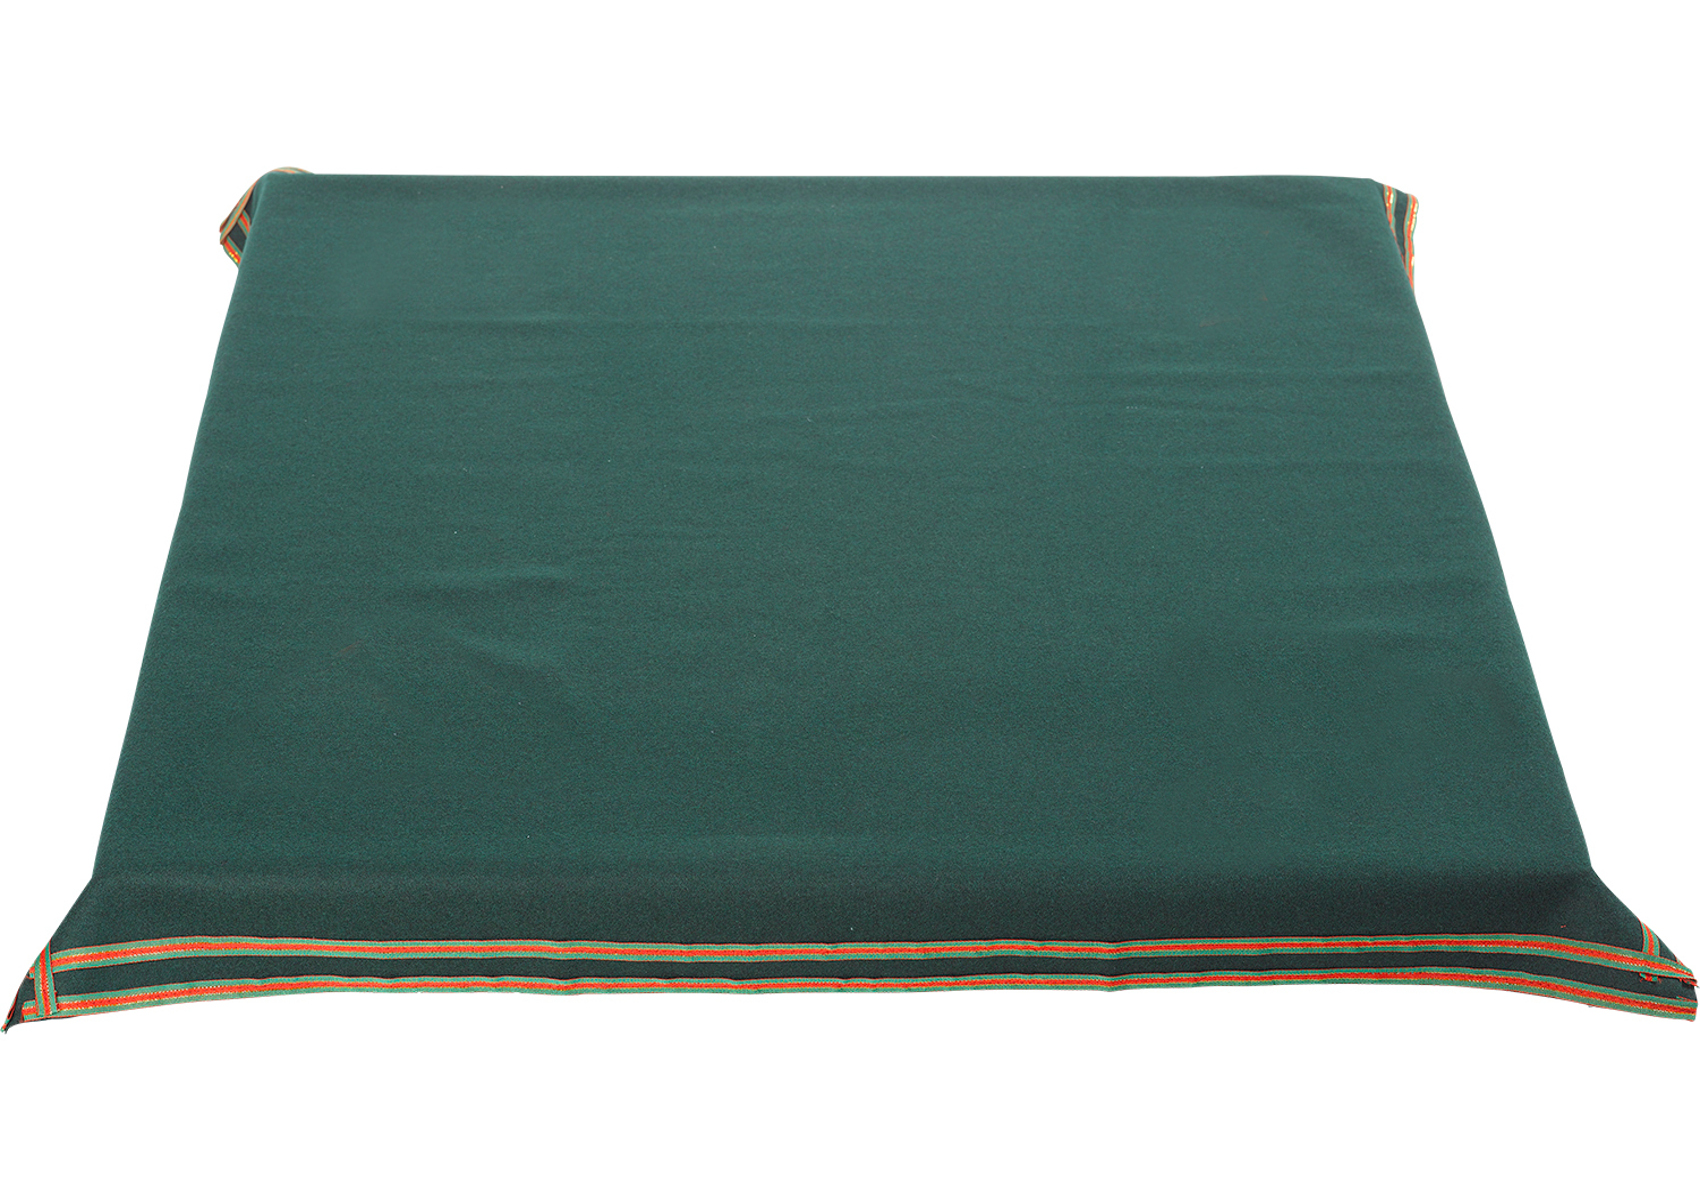 This gaming table cloth is green with a red and gold striped edge and is perfect for card games such as bridge and poker